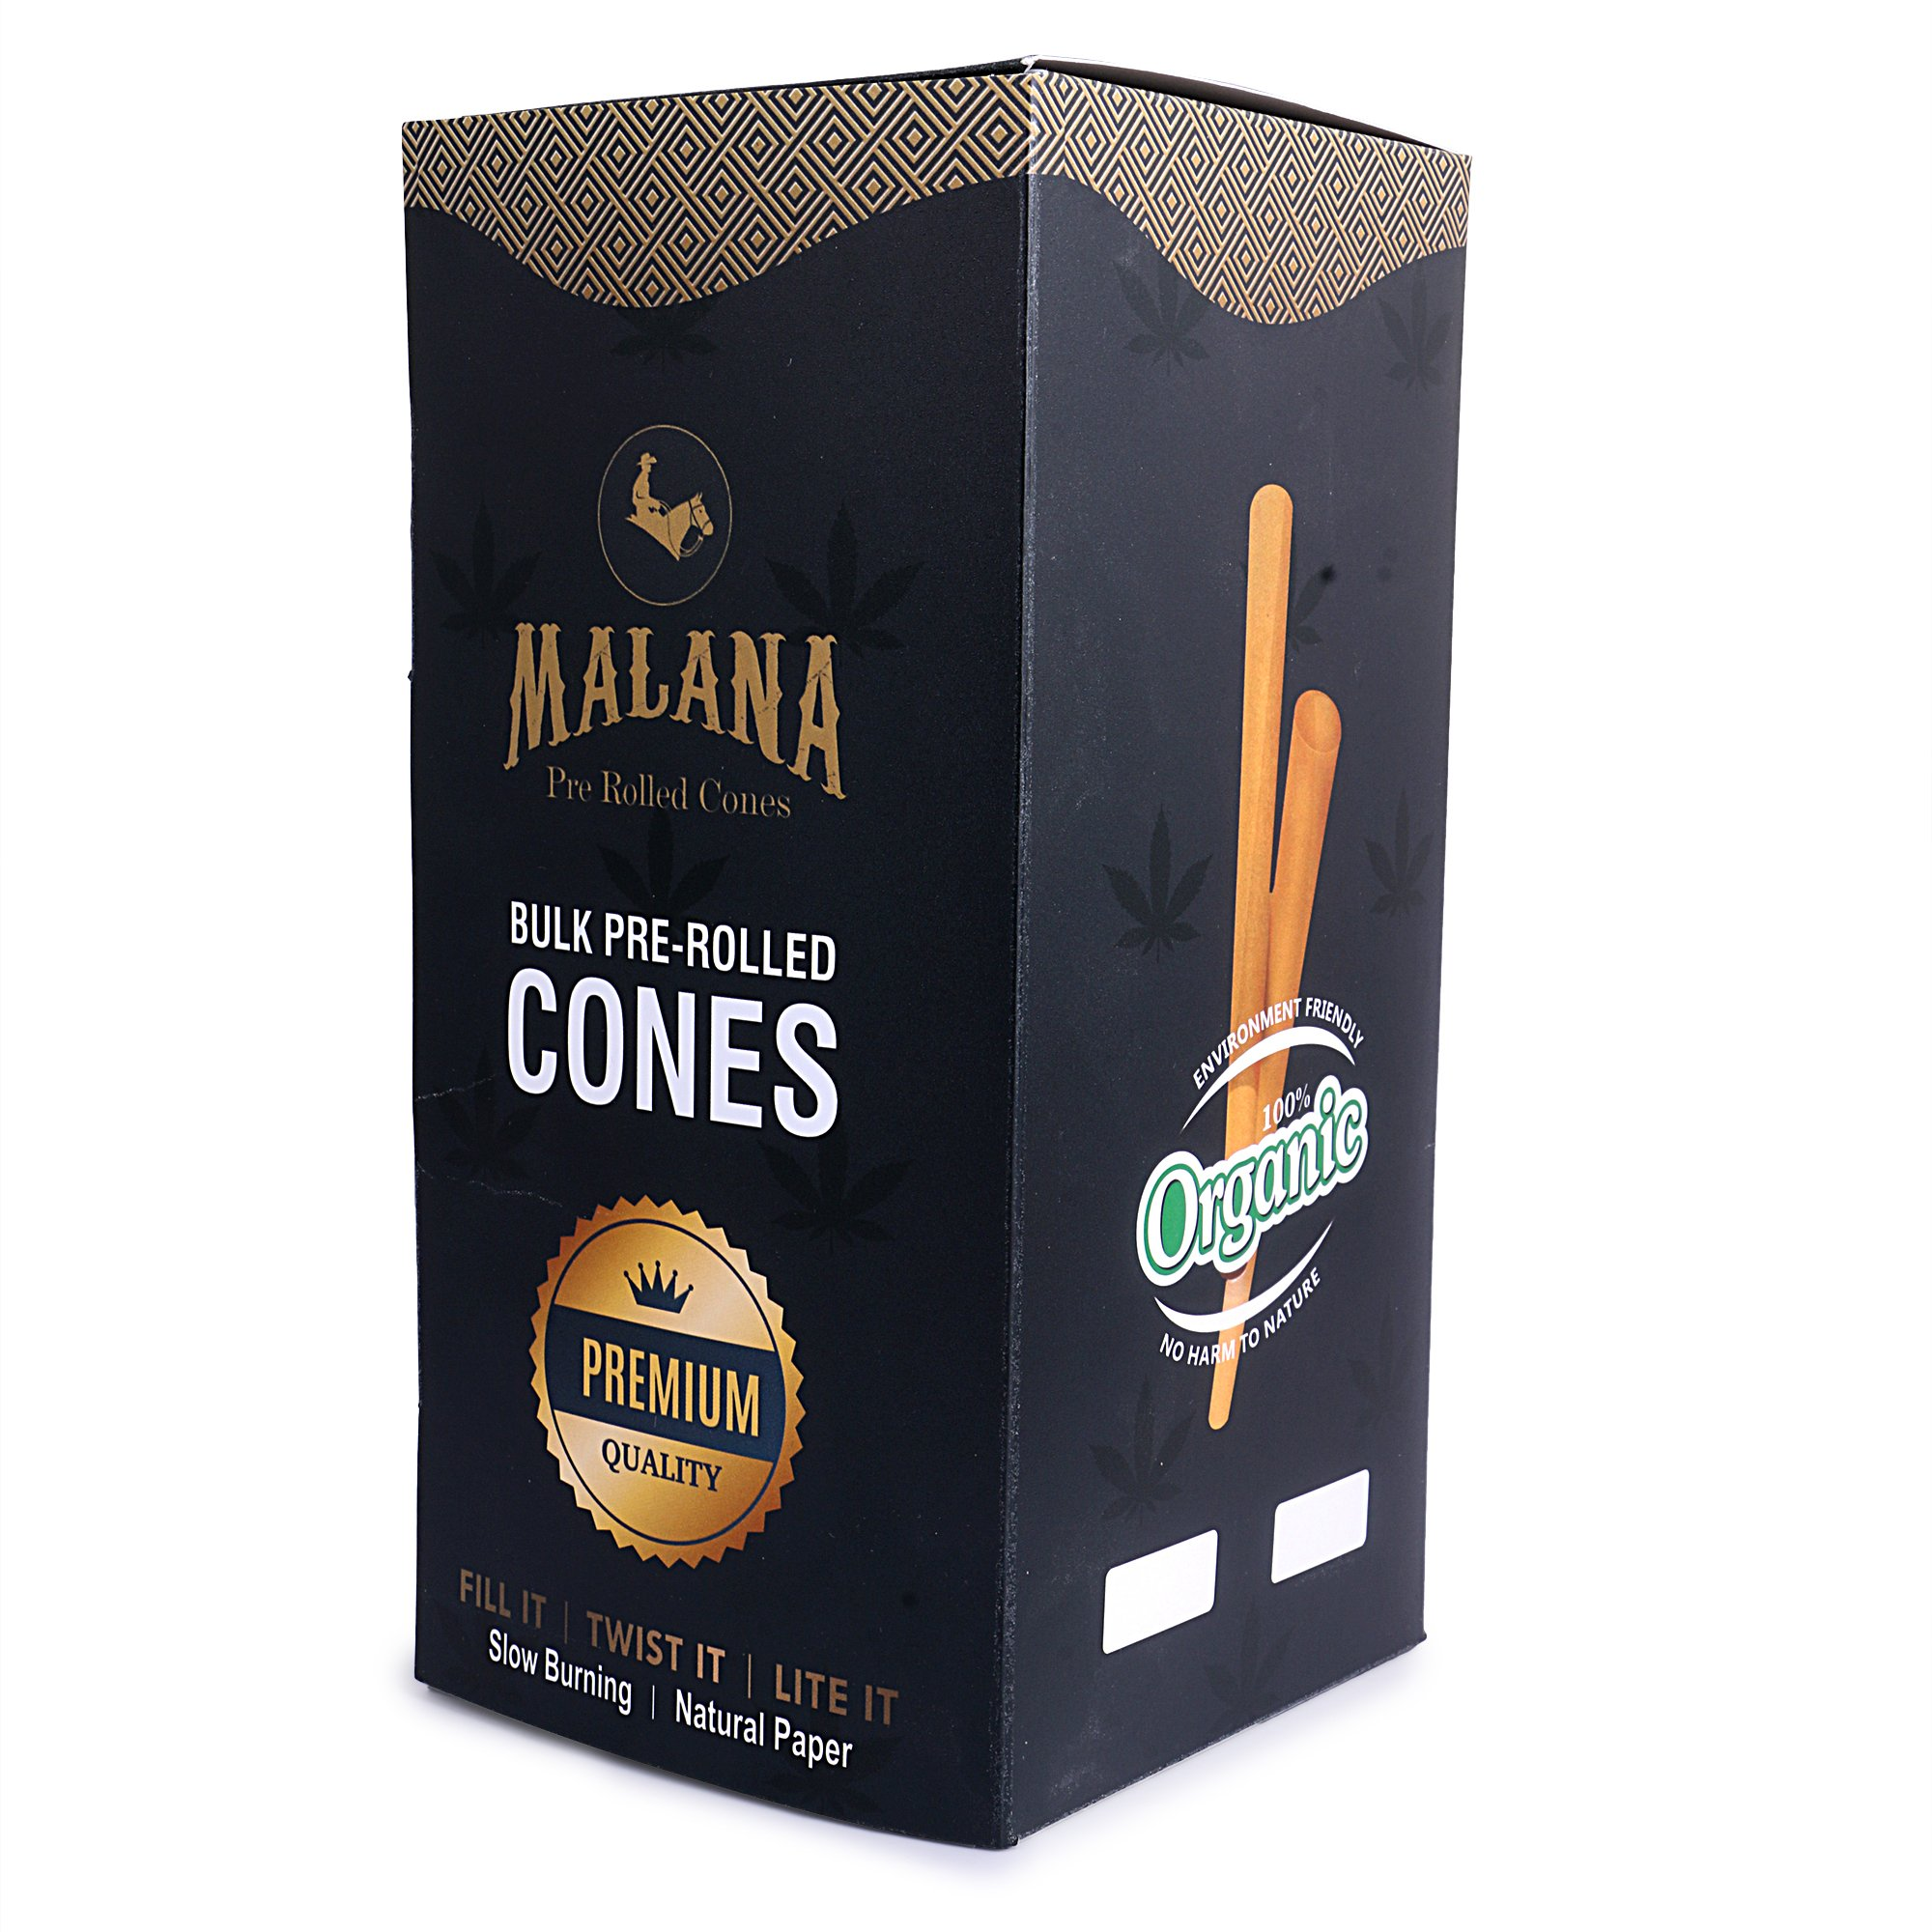 Malana Pre Rolled Cones - King Size 800 Count (Natural Brown Paper) 109/26 by Roll With Us Depot (Image #2)